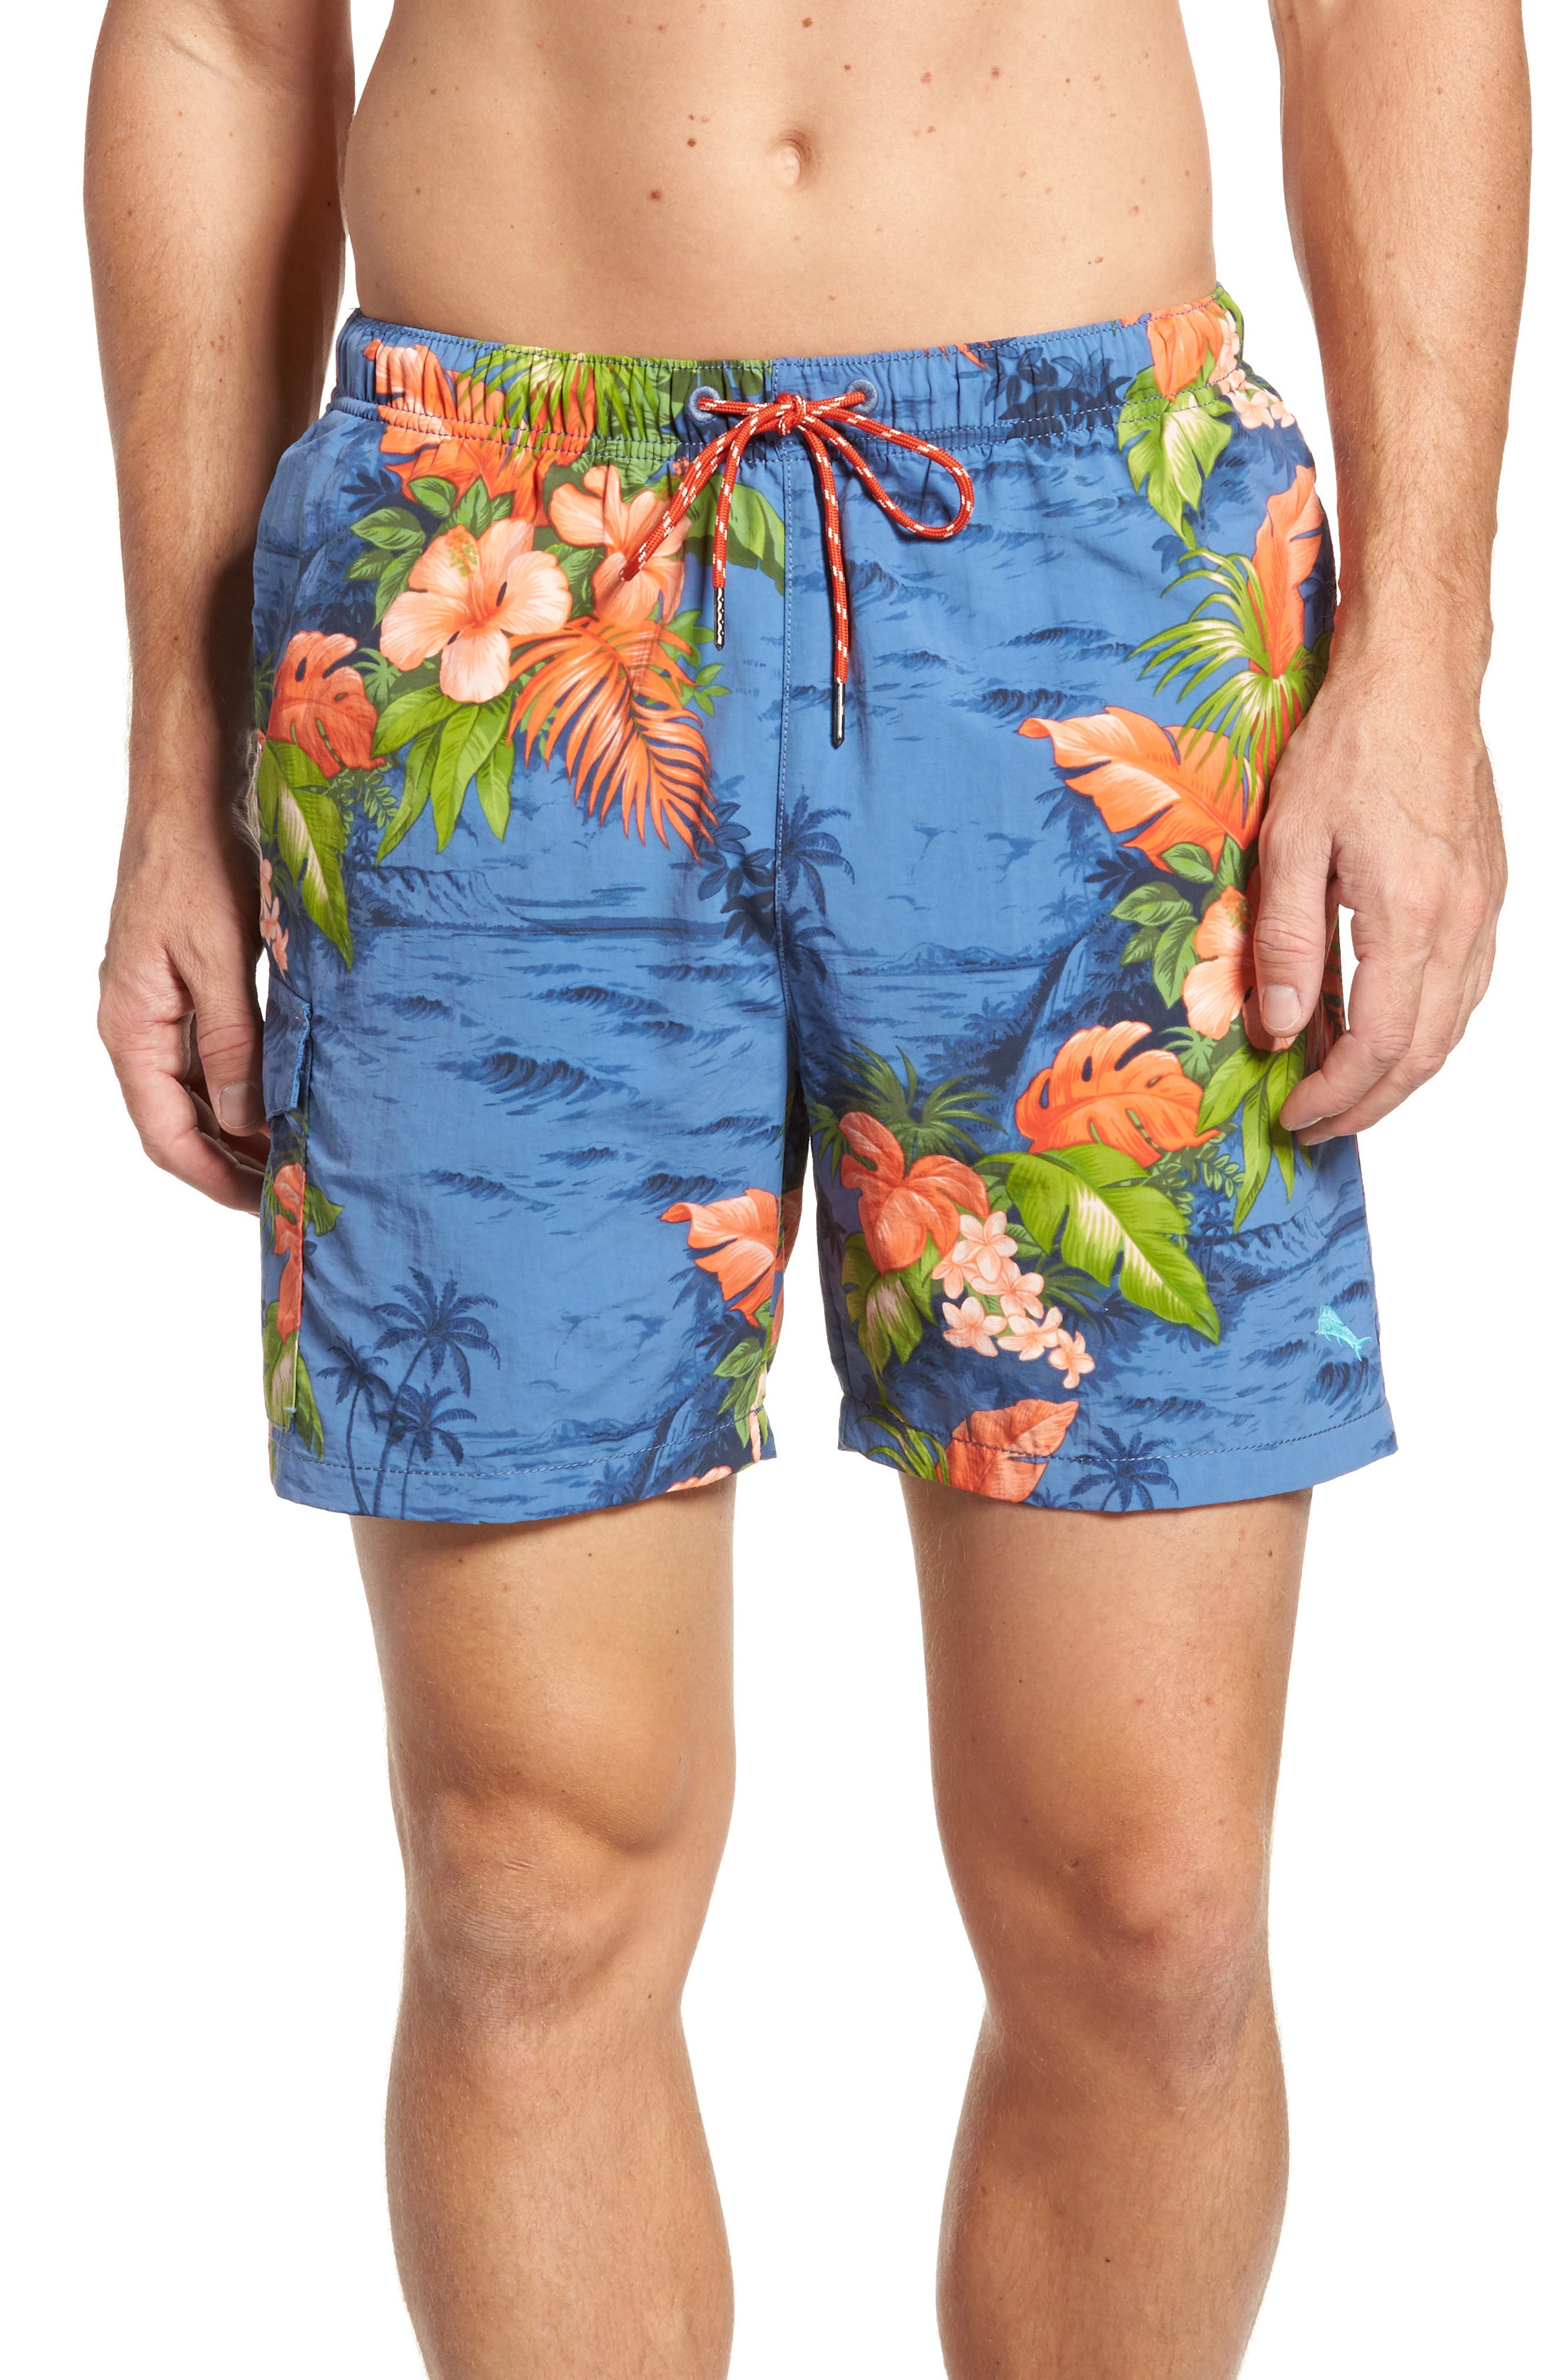 Naples Fiji Ferns Swim Trunks,                         Main,                         color, 400